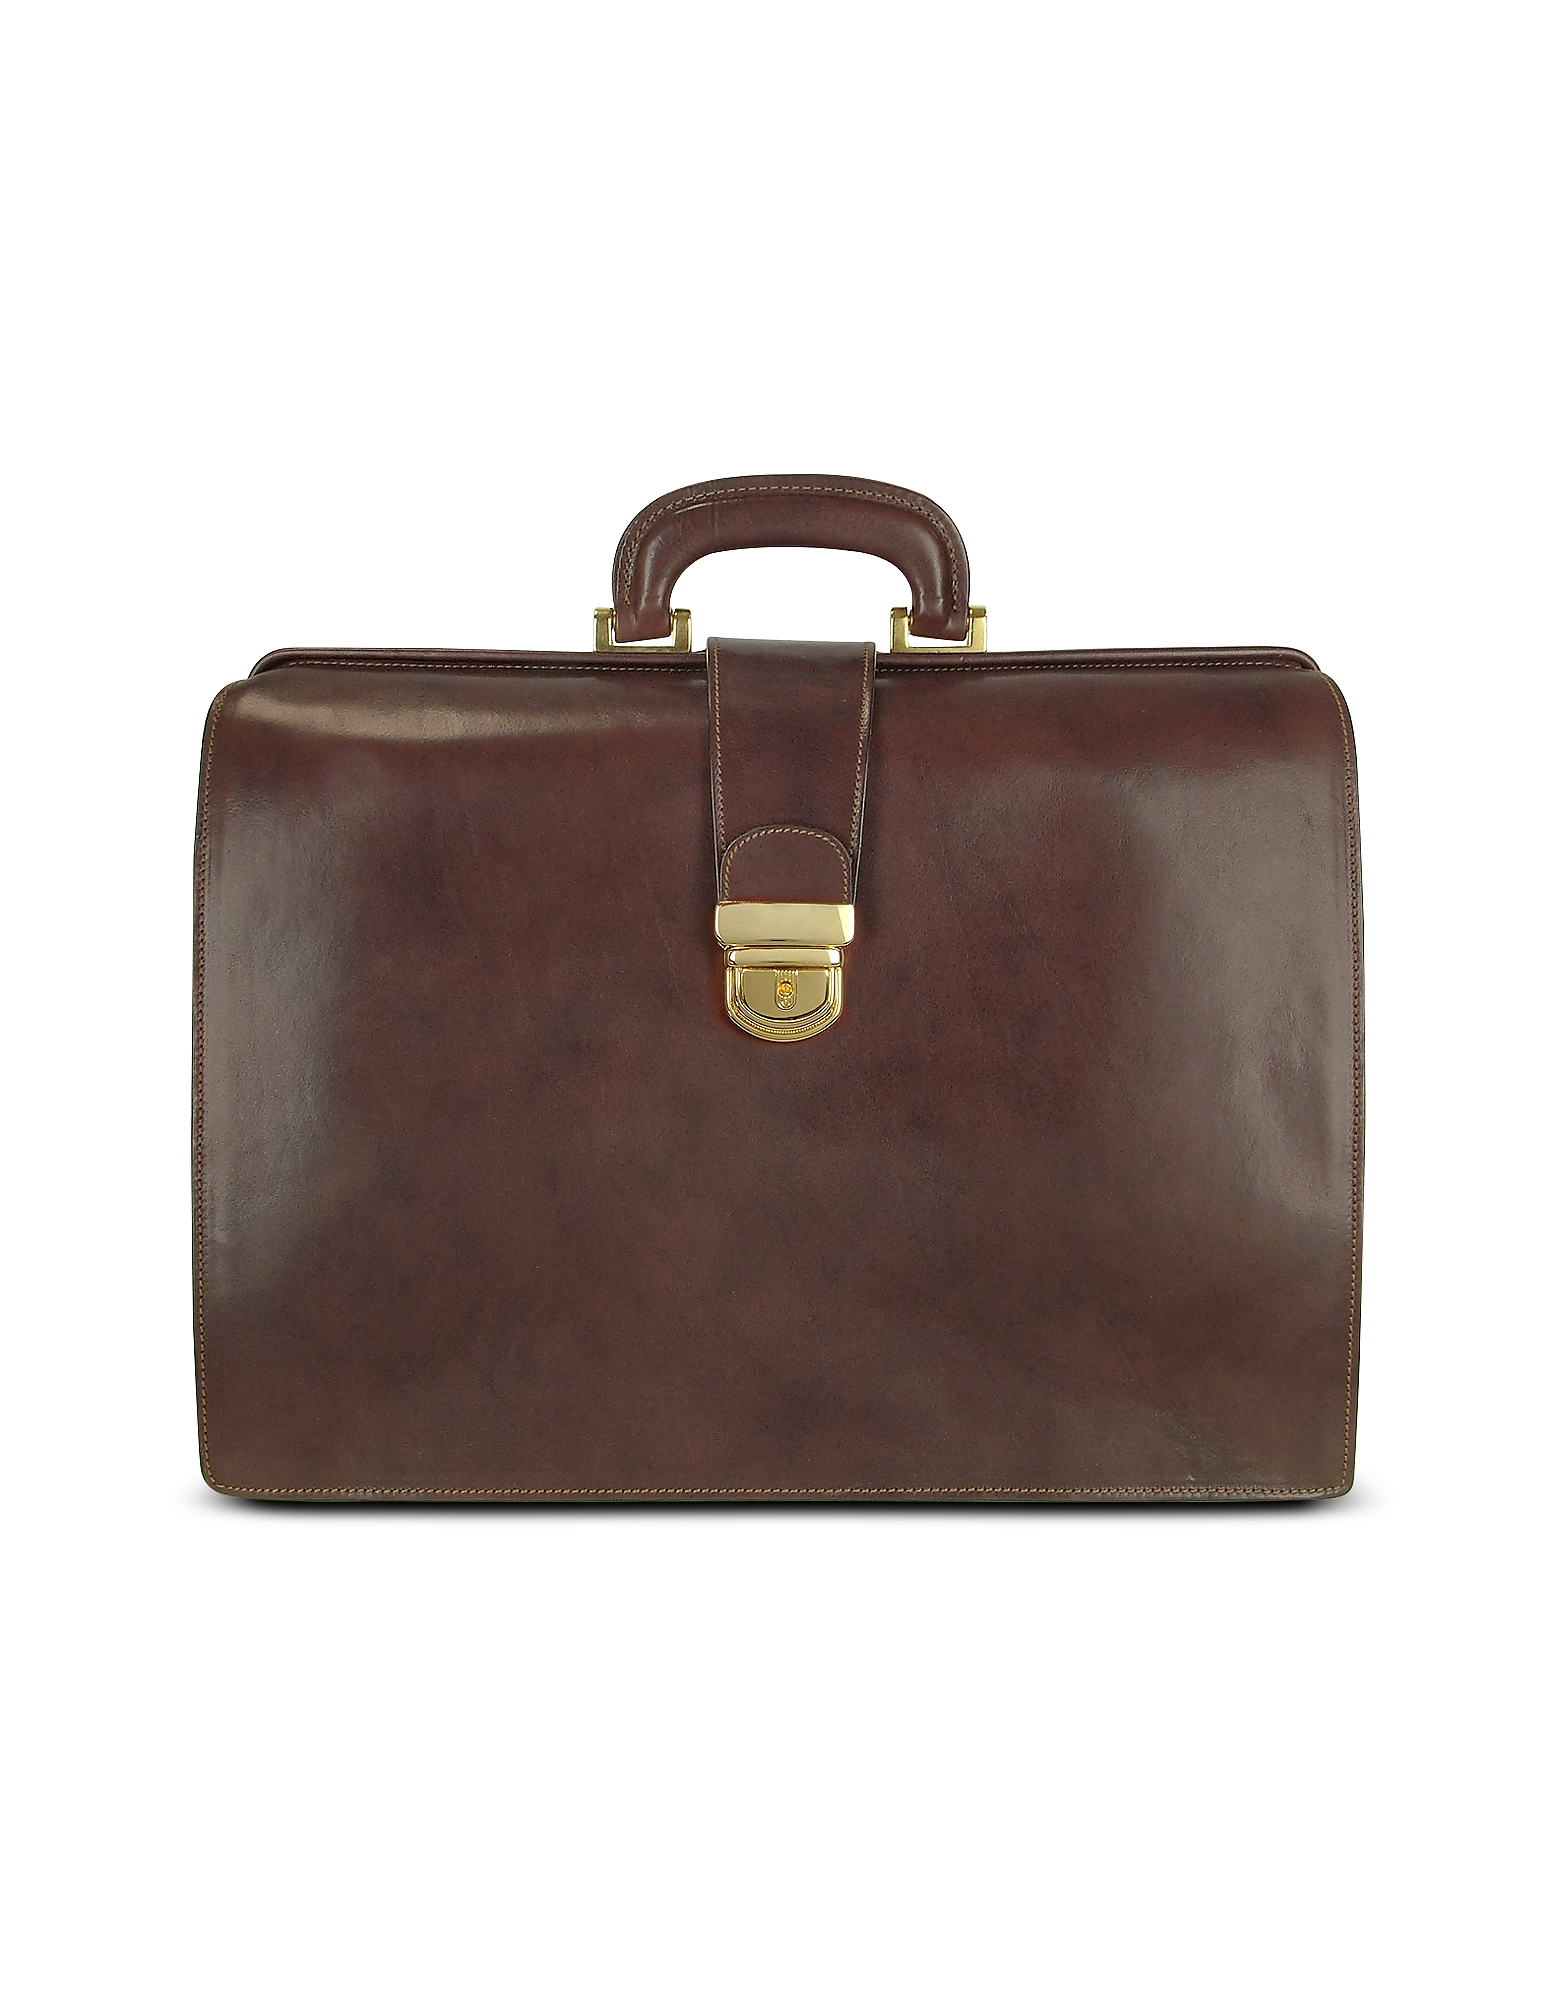 Forzieri Designer Briefcases,  Brown Italian Leather Buckled Large Doctor Bag